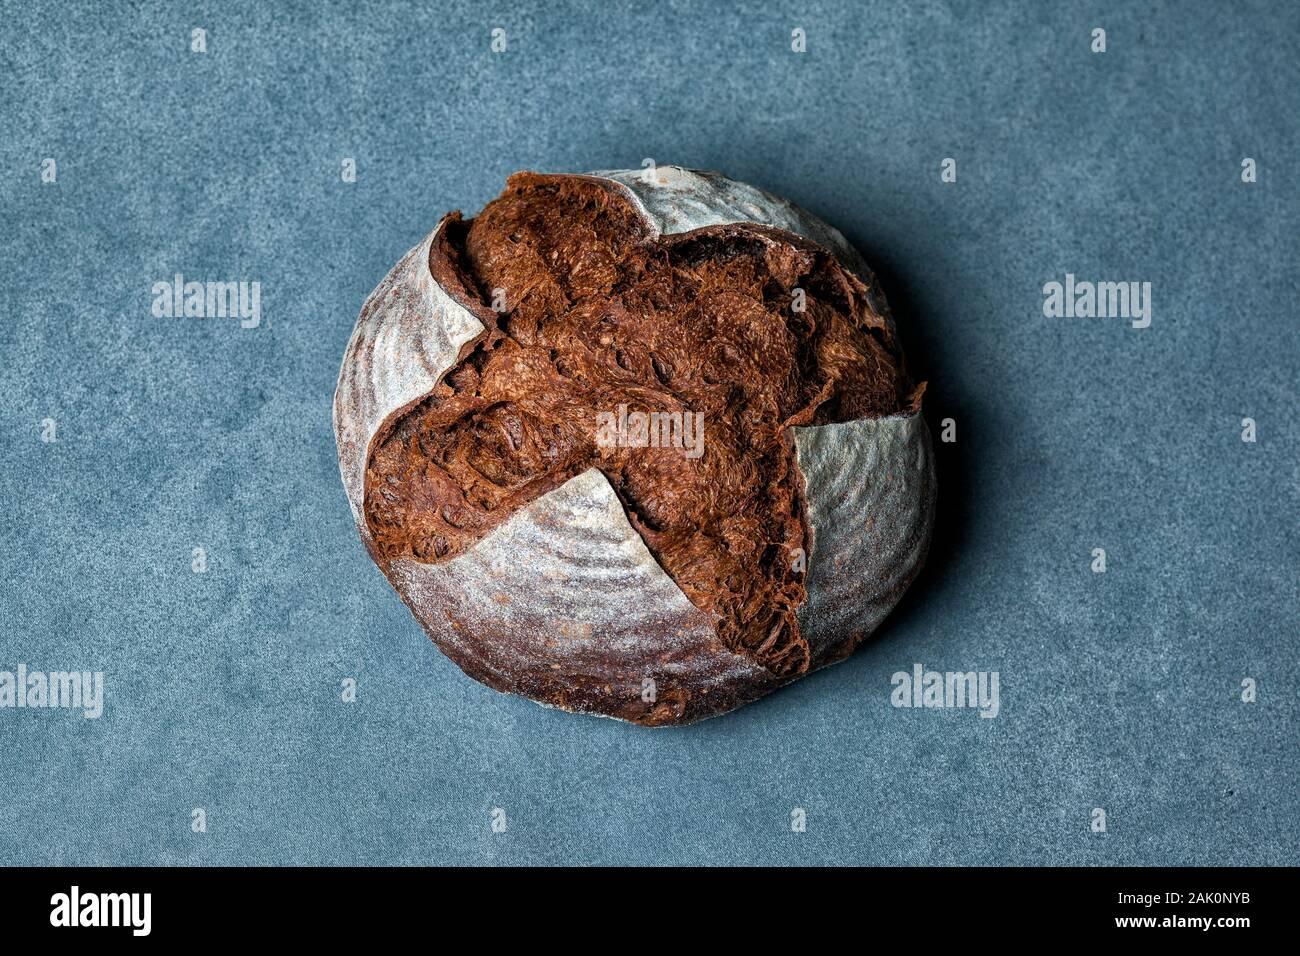 Artisan loaf of traditional Homemade Pumpernickel sourdough Boule bread with crust on a wooden board Stock Photo